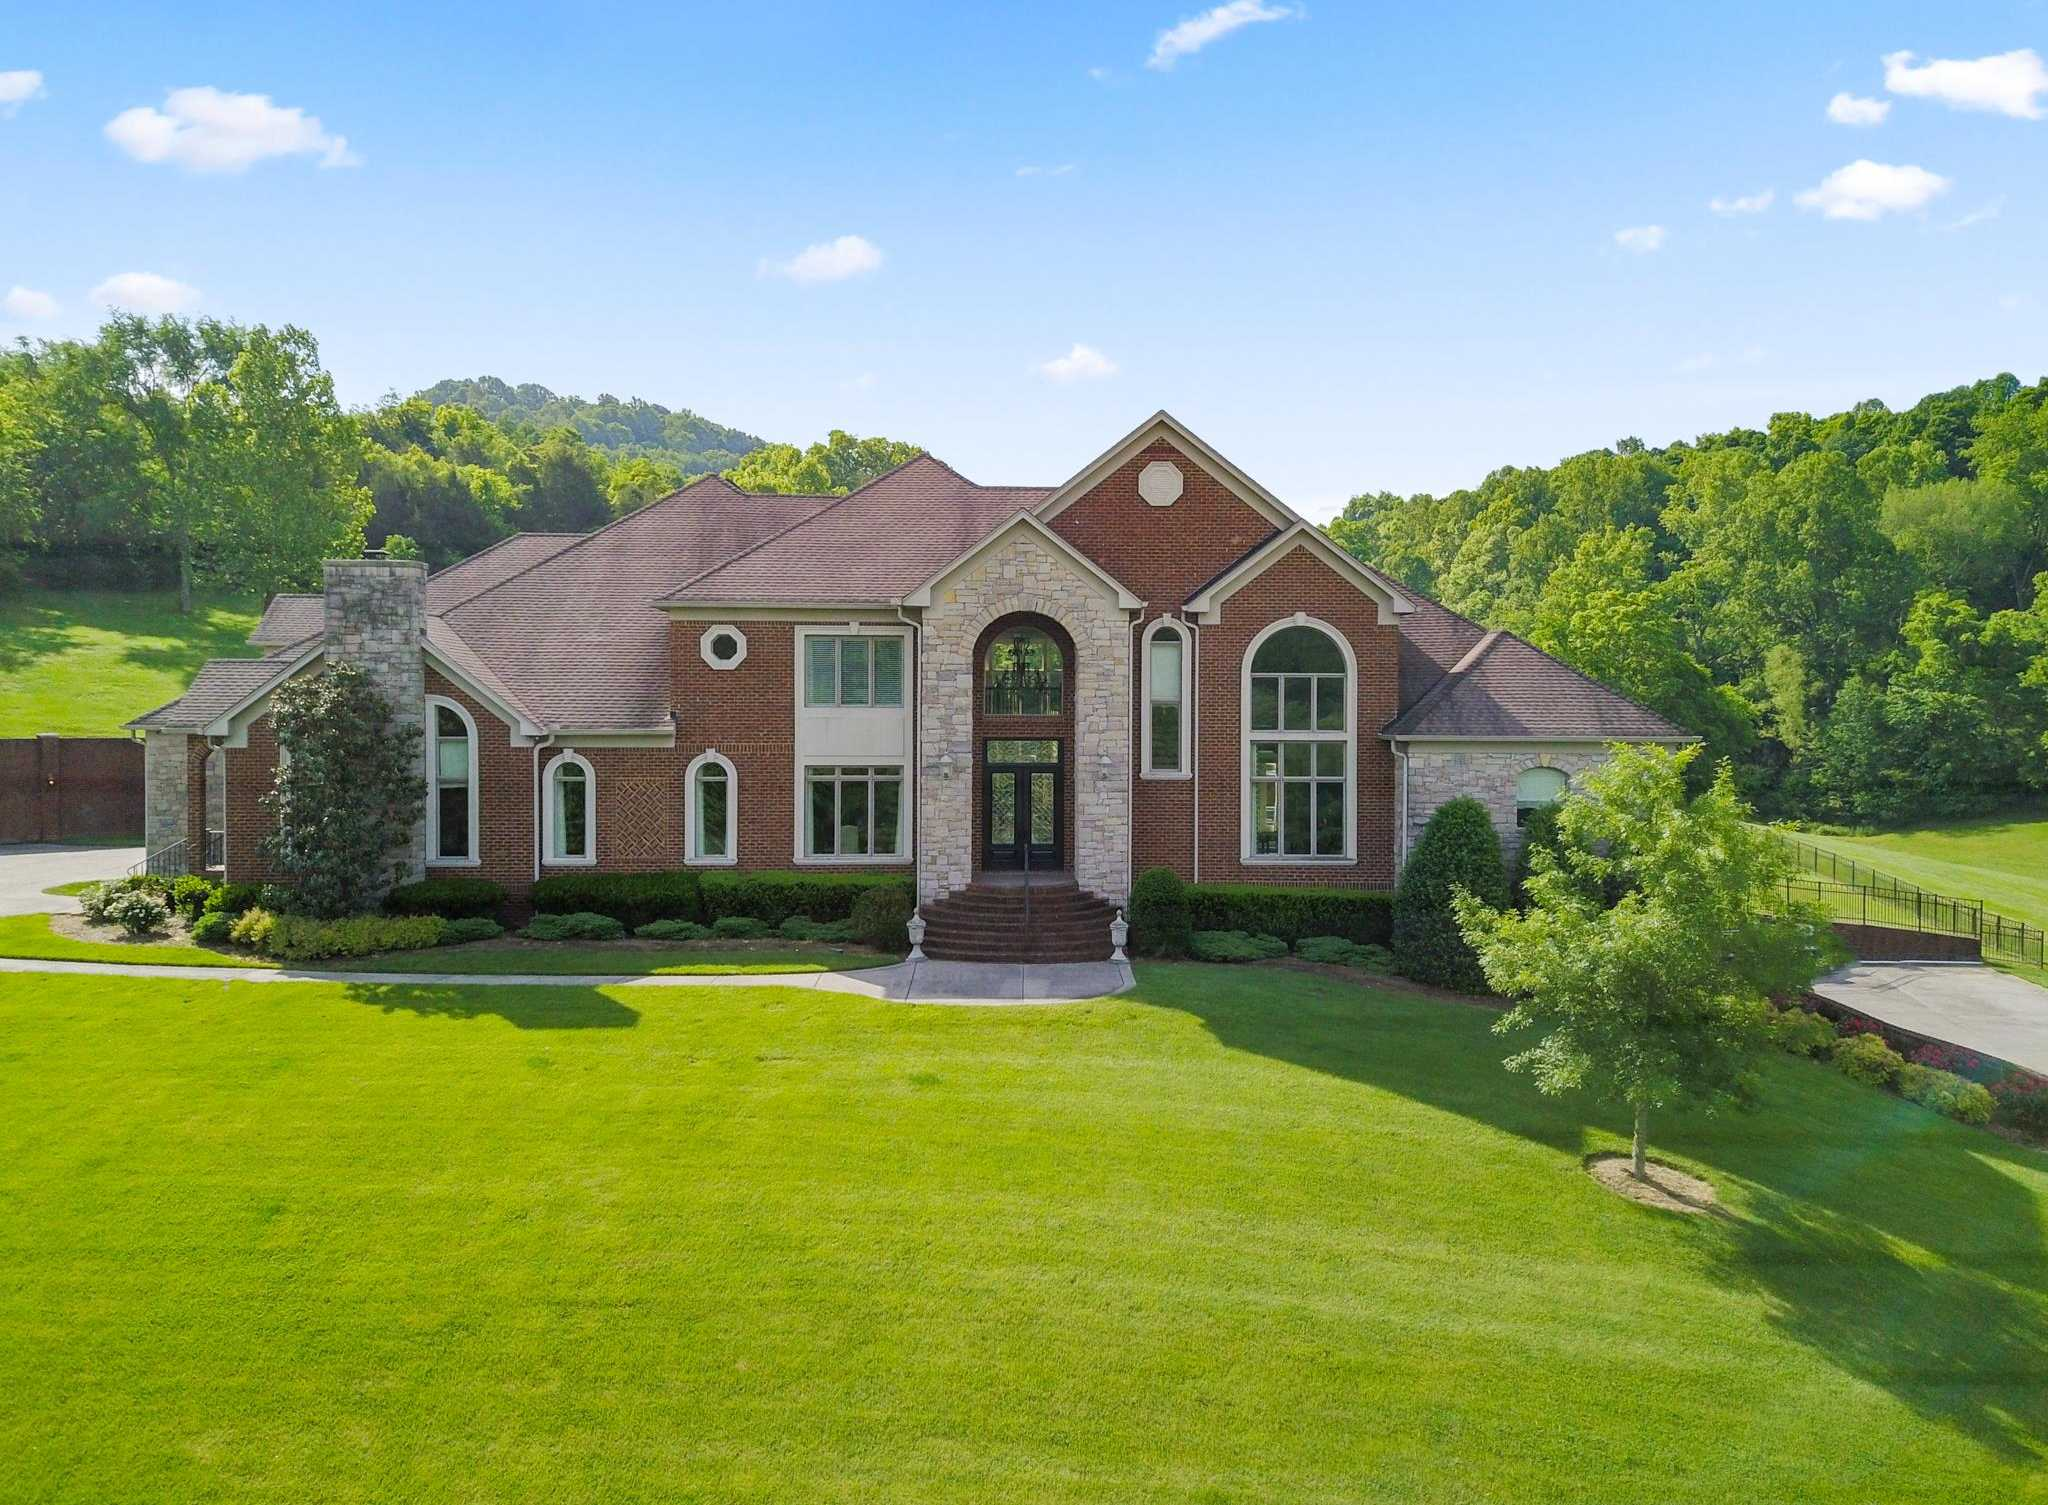 $2,400,000 - 5Br/8Ba -  for Sale in None, Goodlettsville